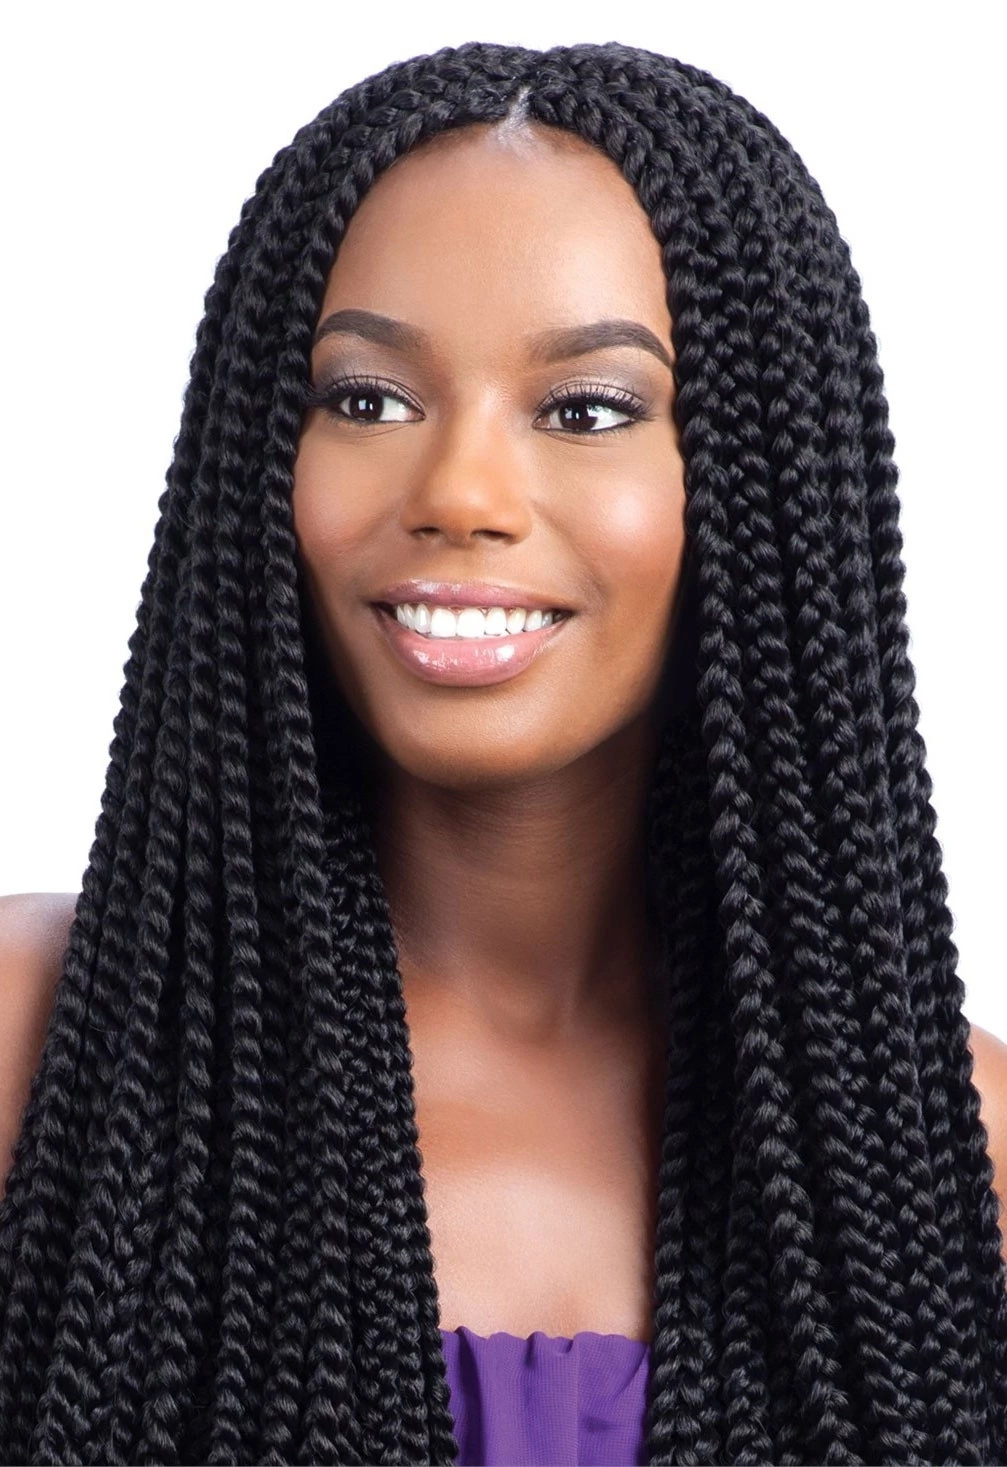 nigerian braids hairstyles pictures gallery 20172018 tuko